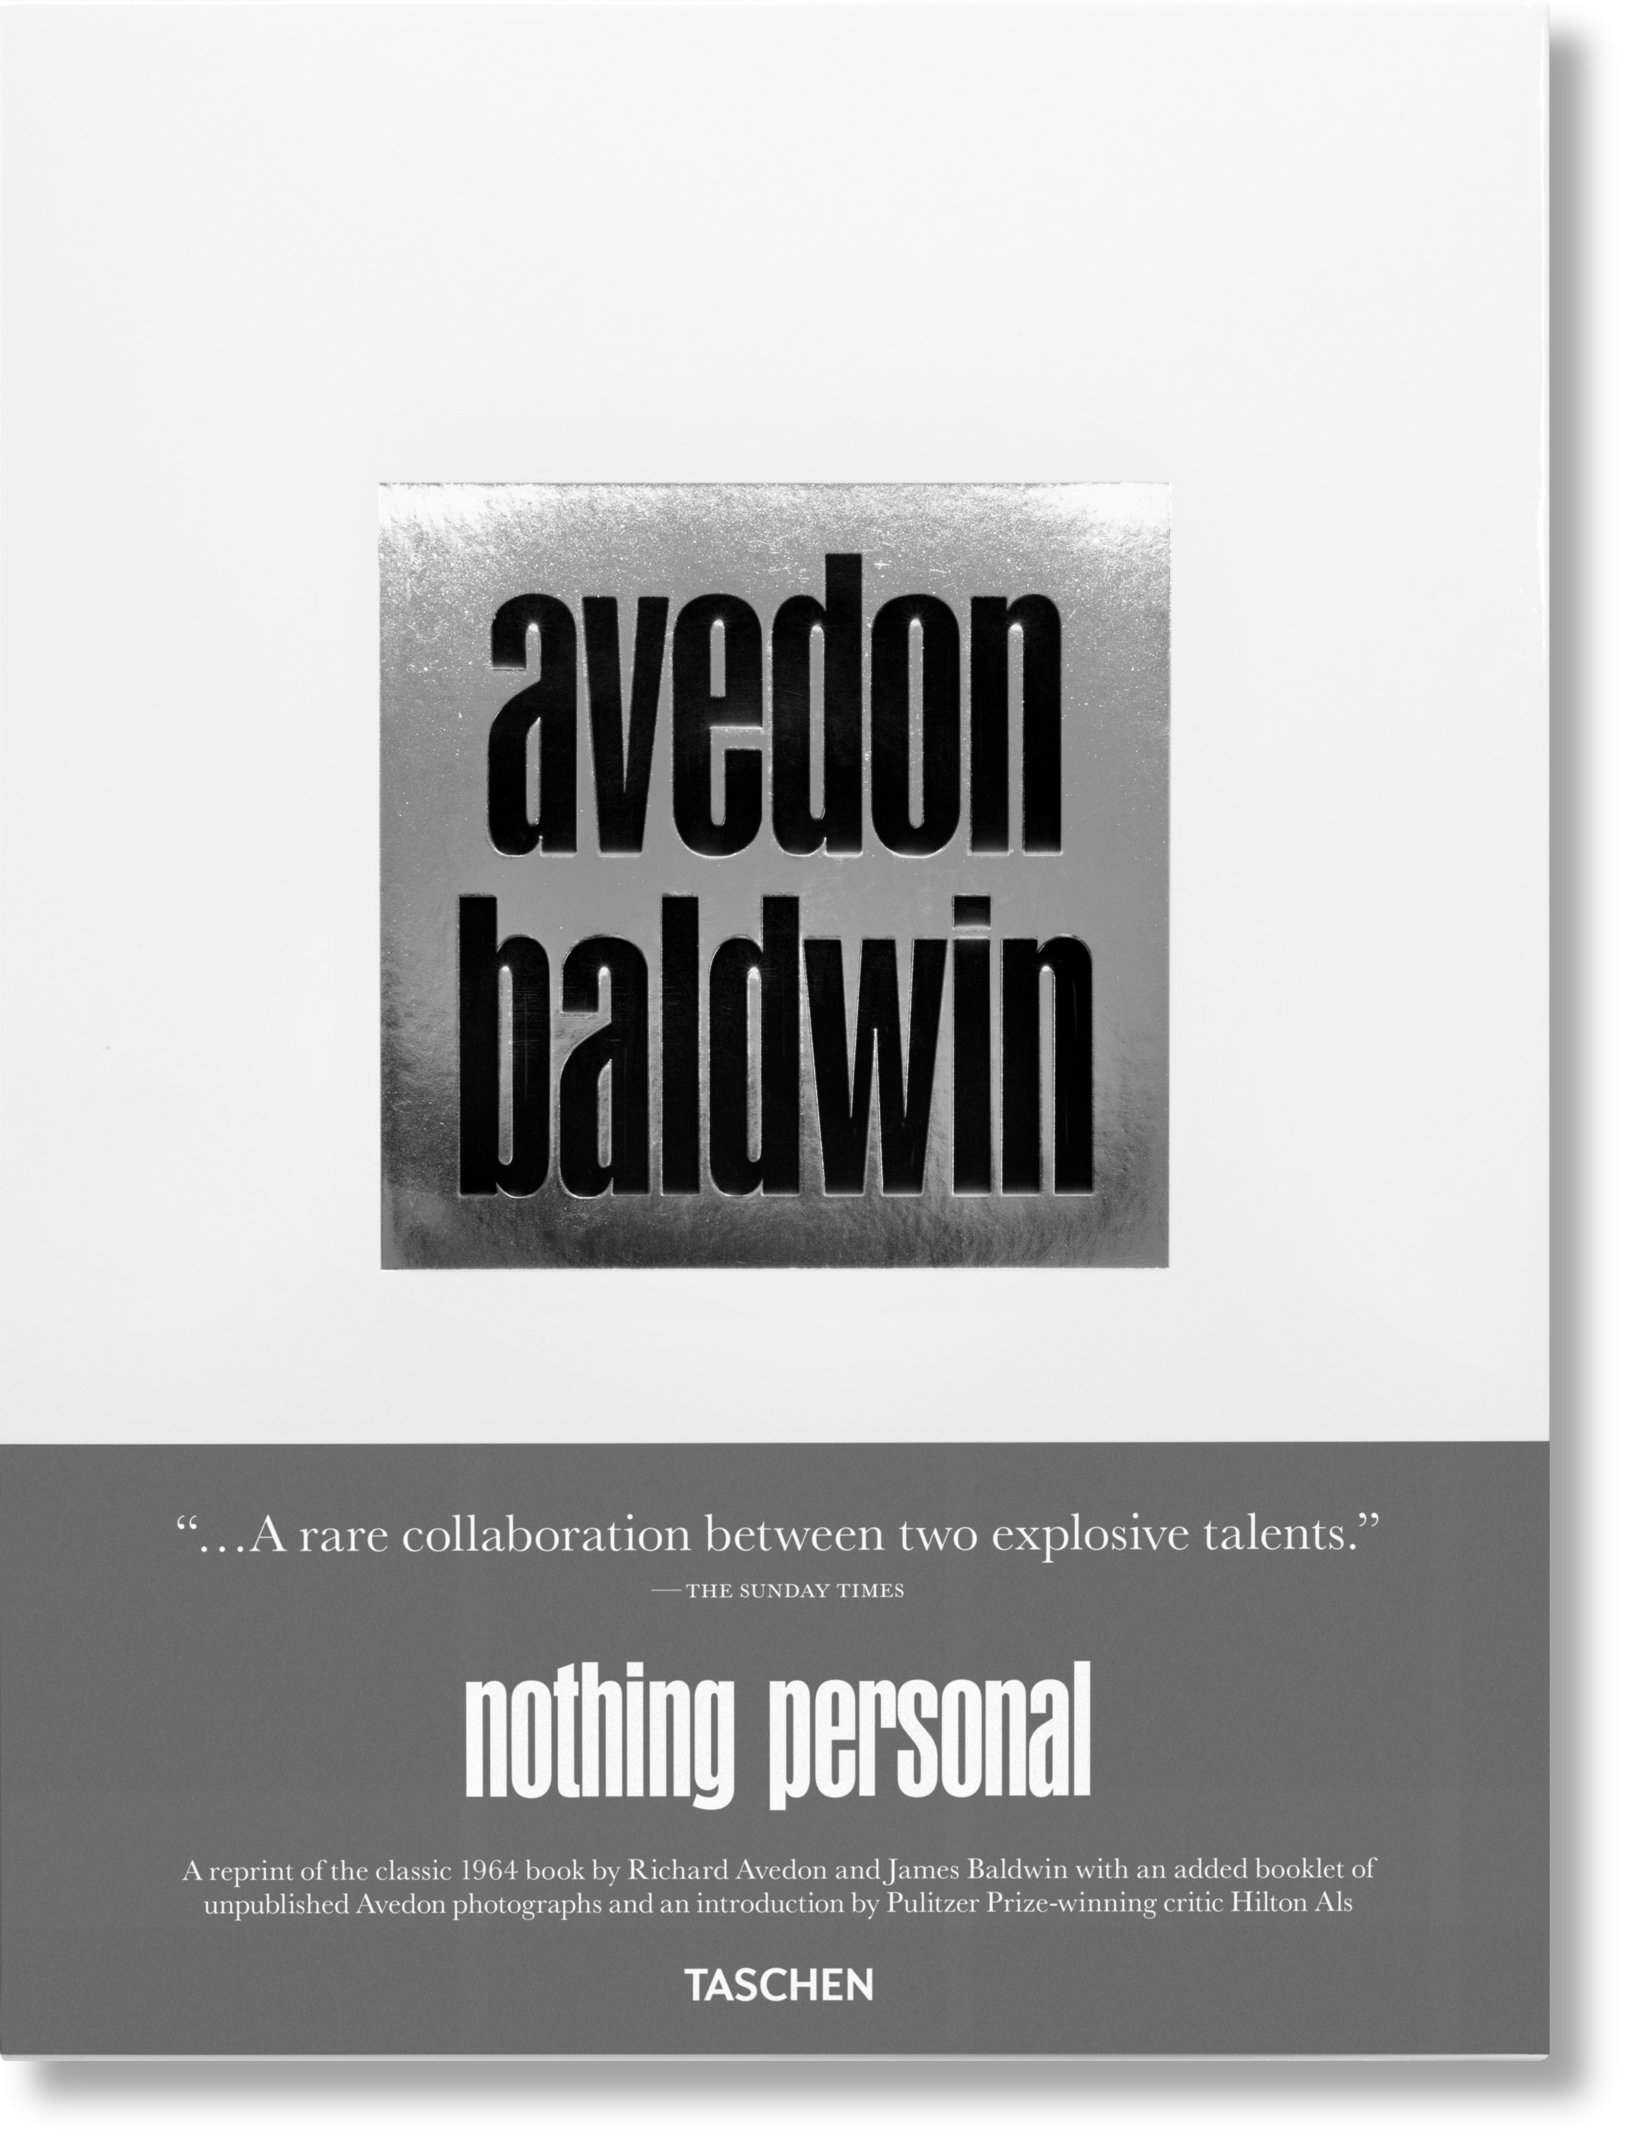 Nothing Personal  (2017), essay by James Baldwin and new introduction by Hilton Als